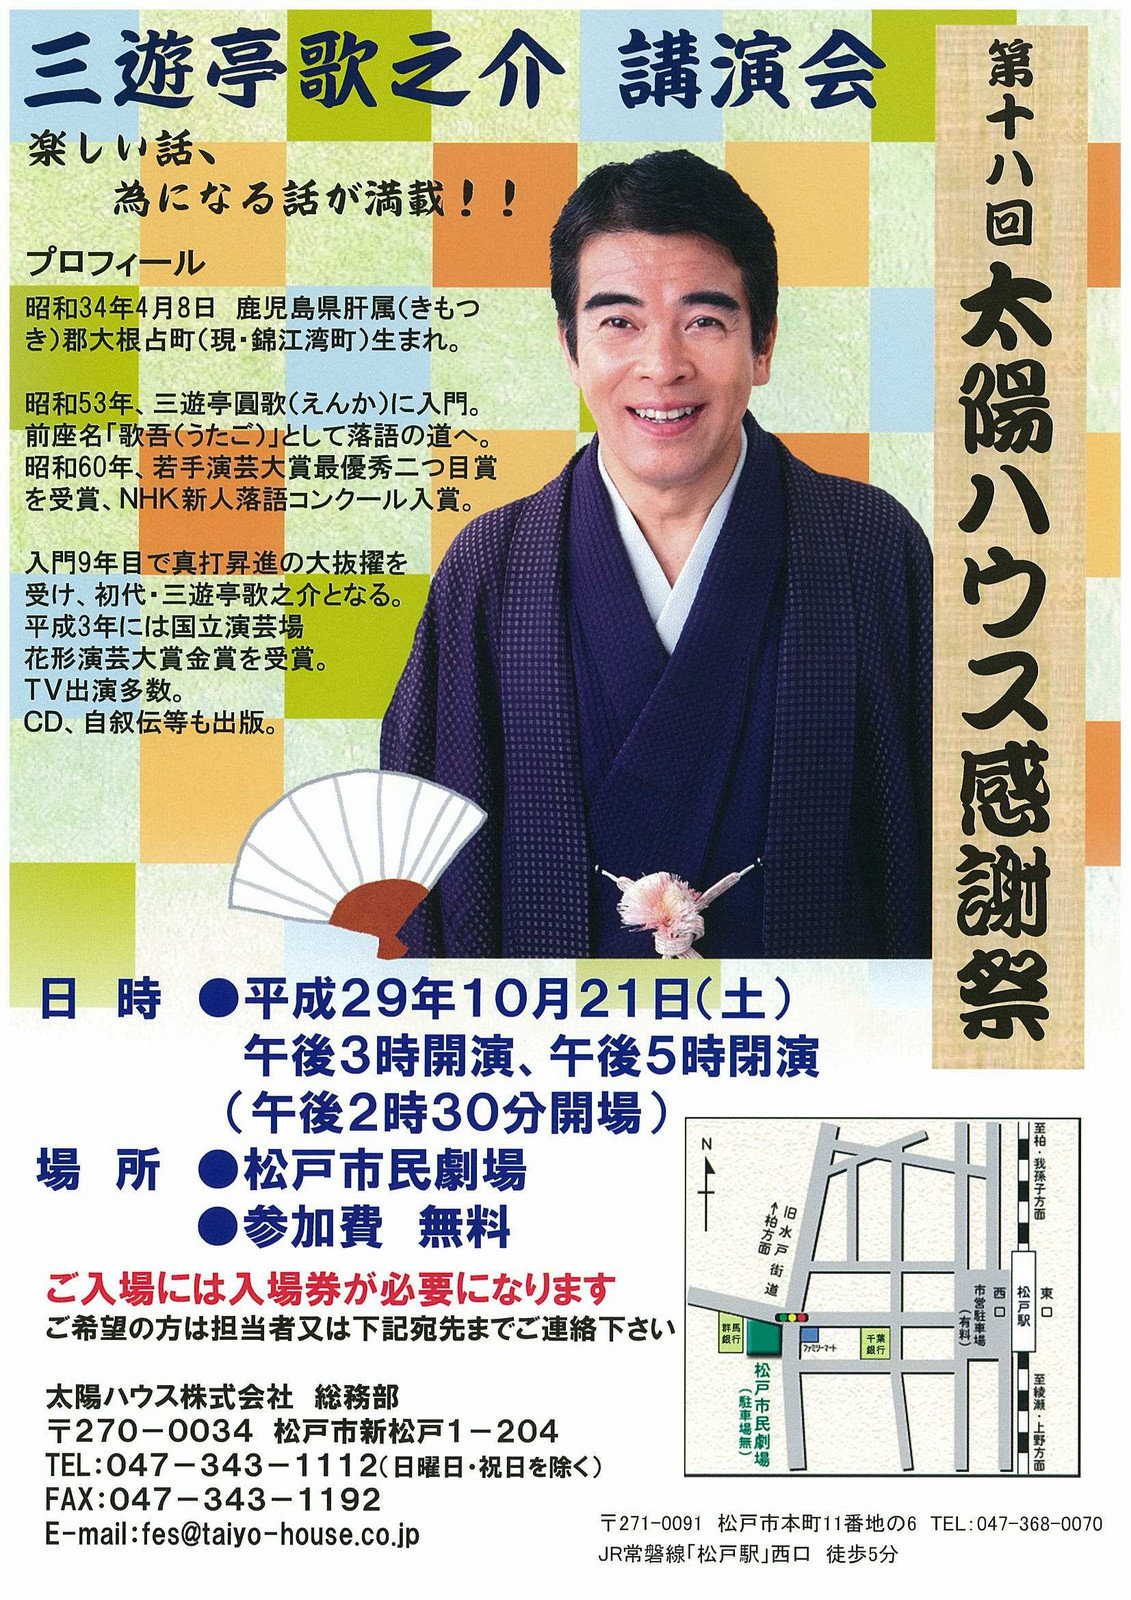 Scan29